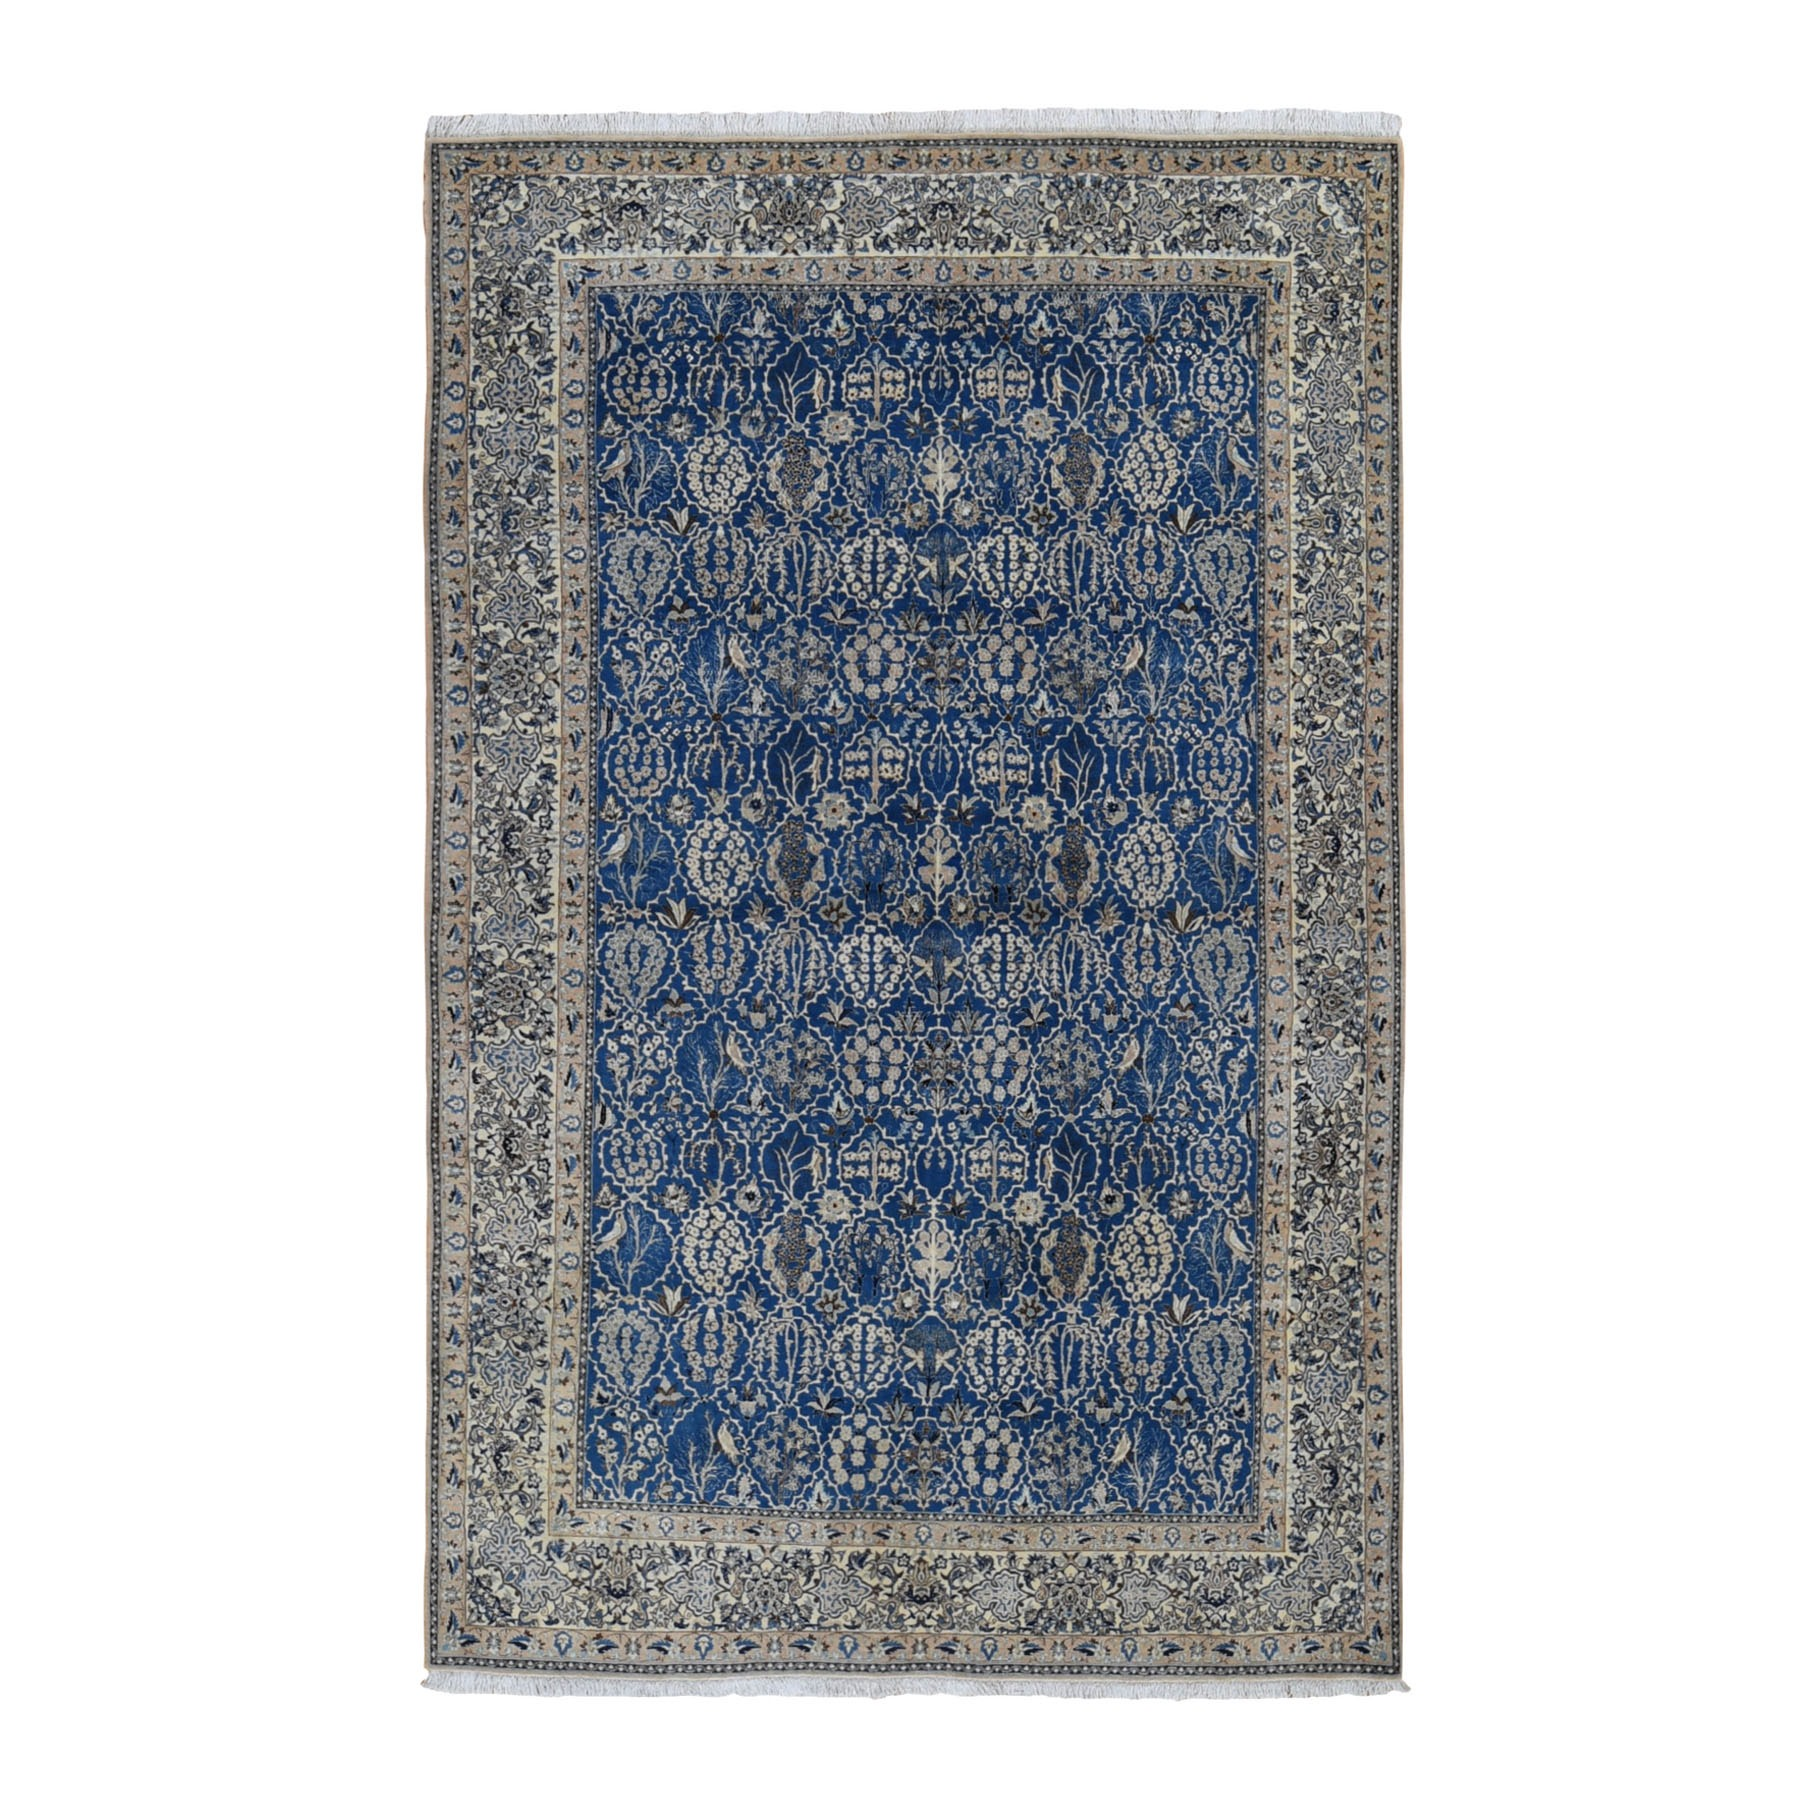 Classic Persian Collection Hand Knotted Blue Rug No: 199668